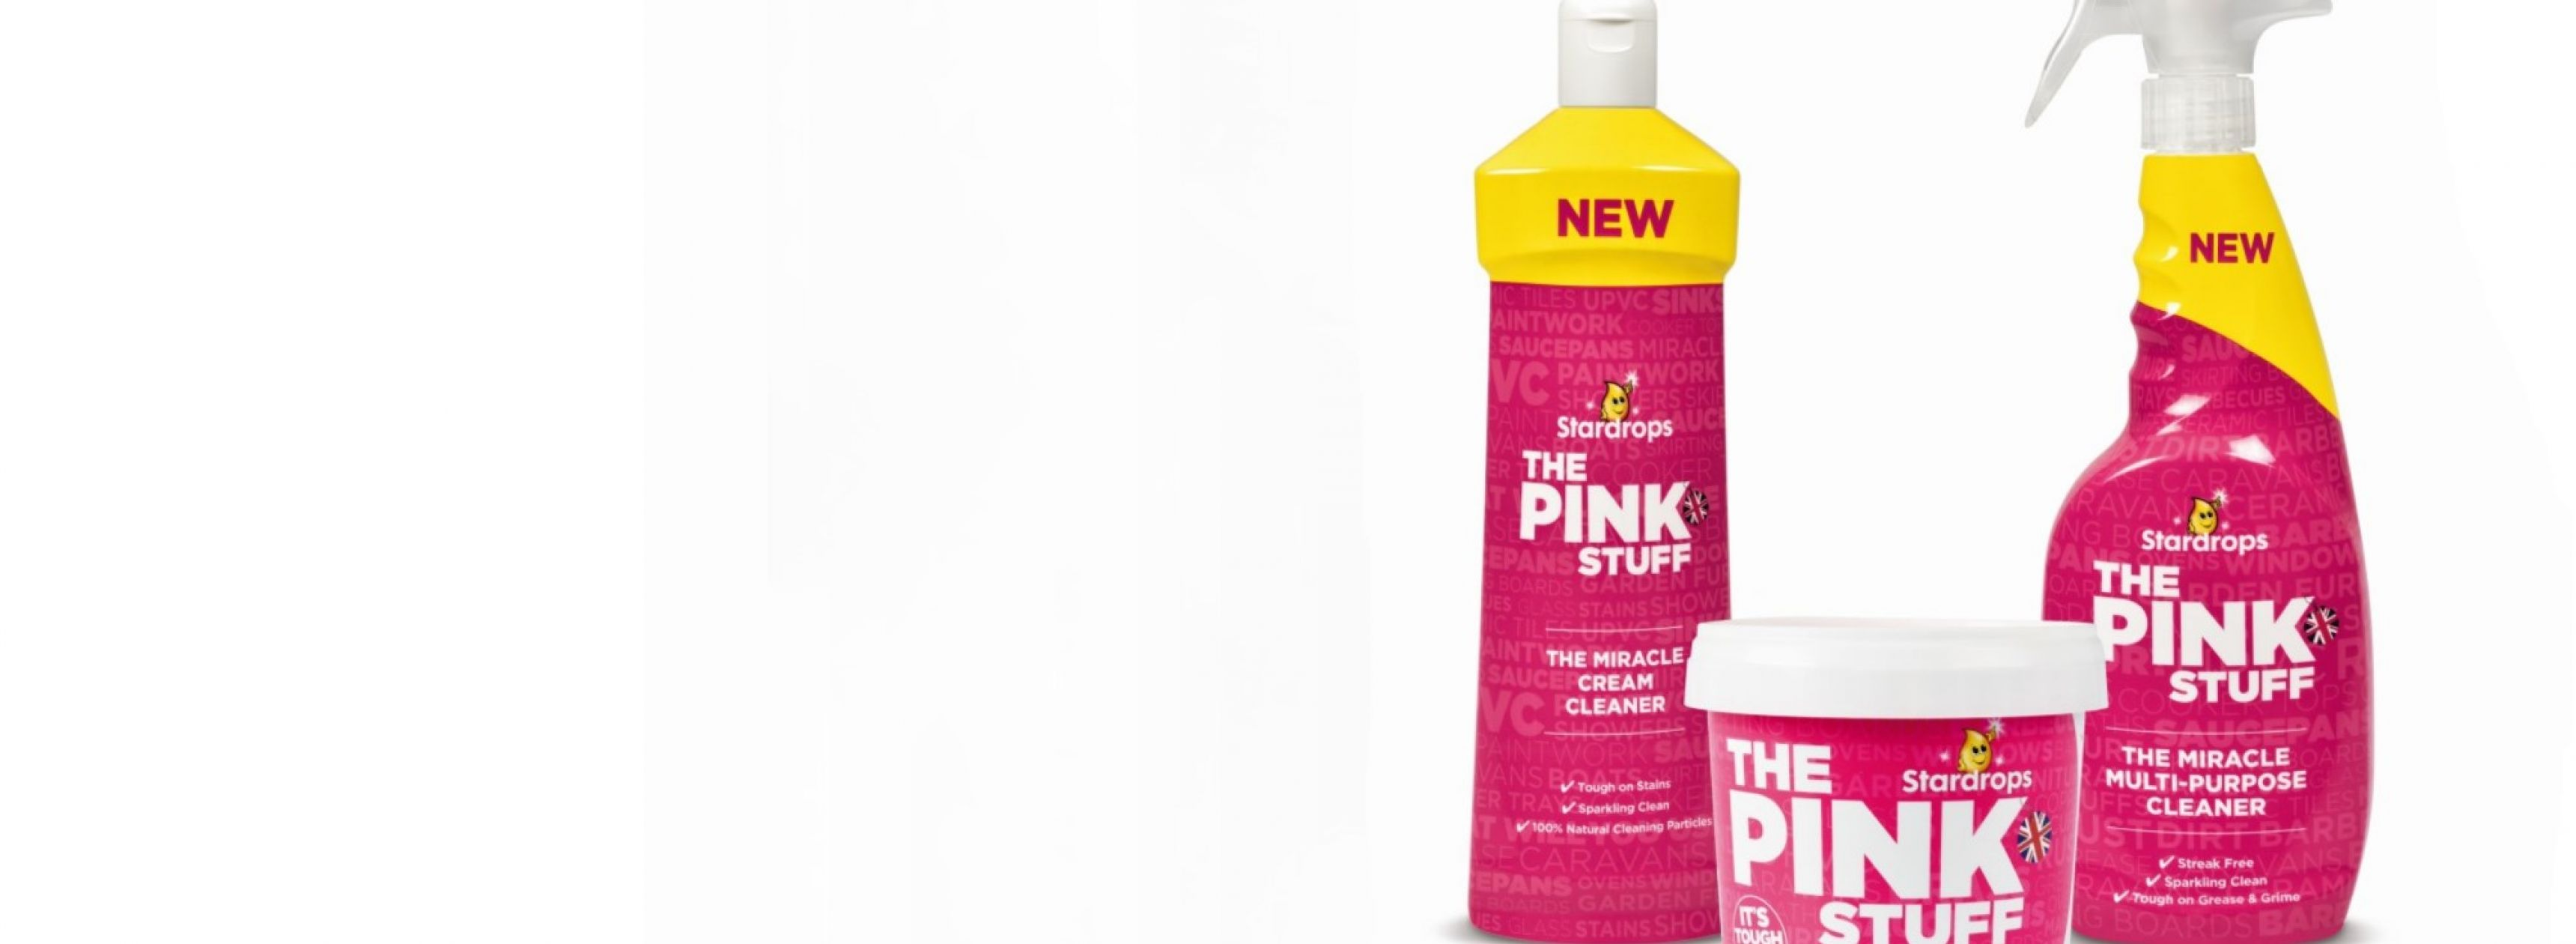 Star brands The Pink Stuff